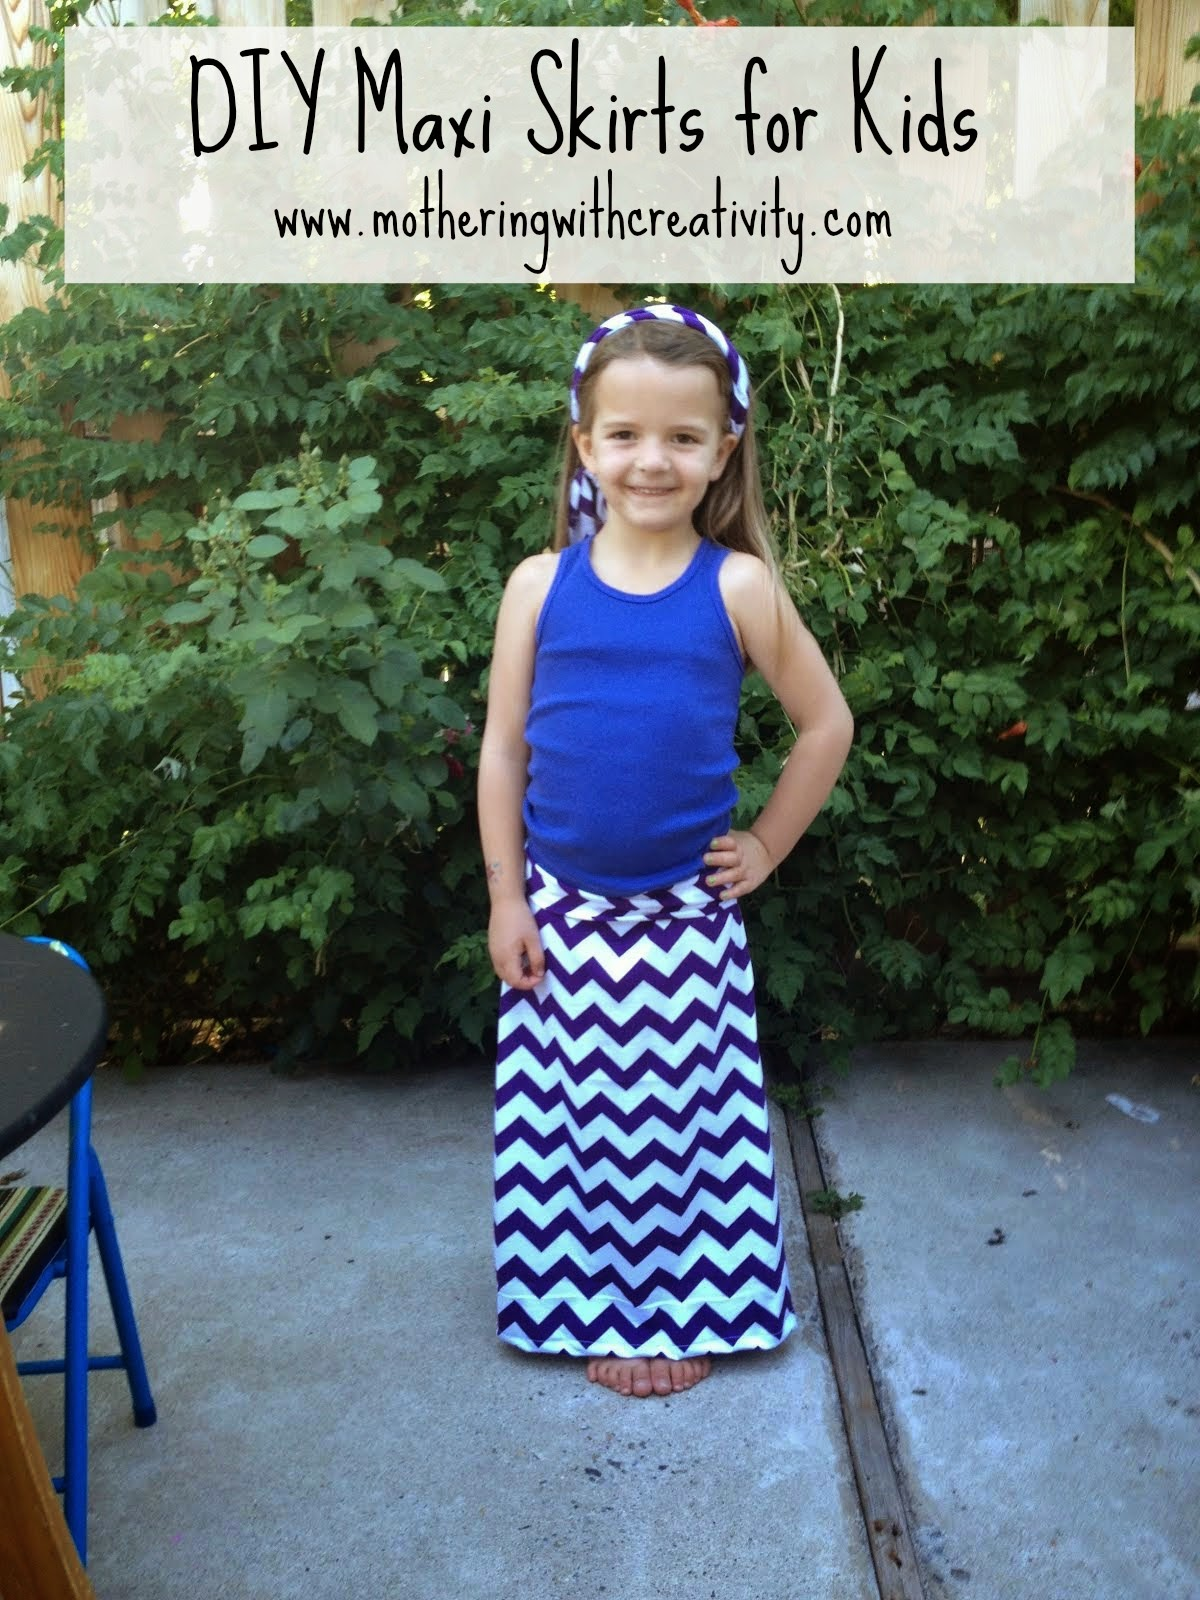 Mothering With Creativity Diy Maxi Skirts For Kids